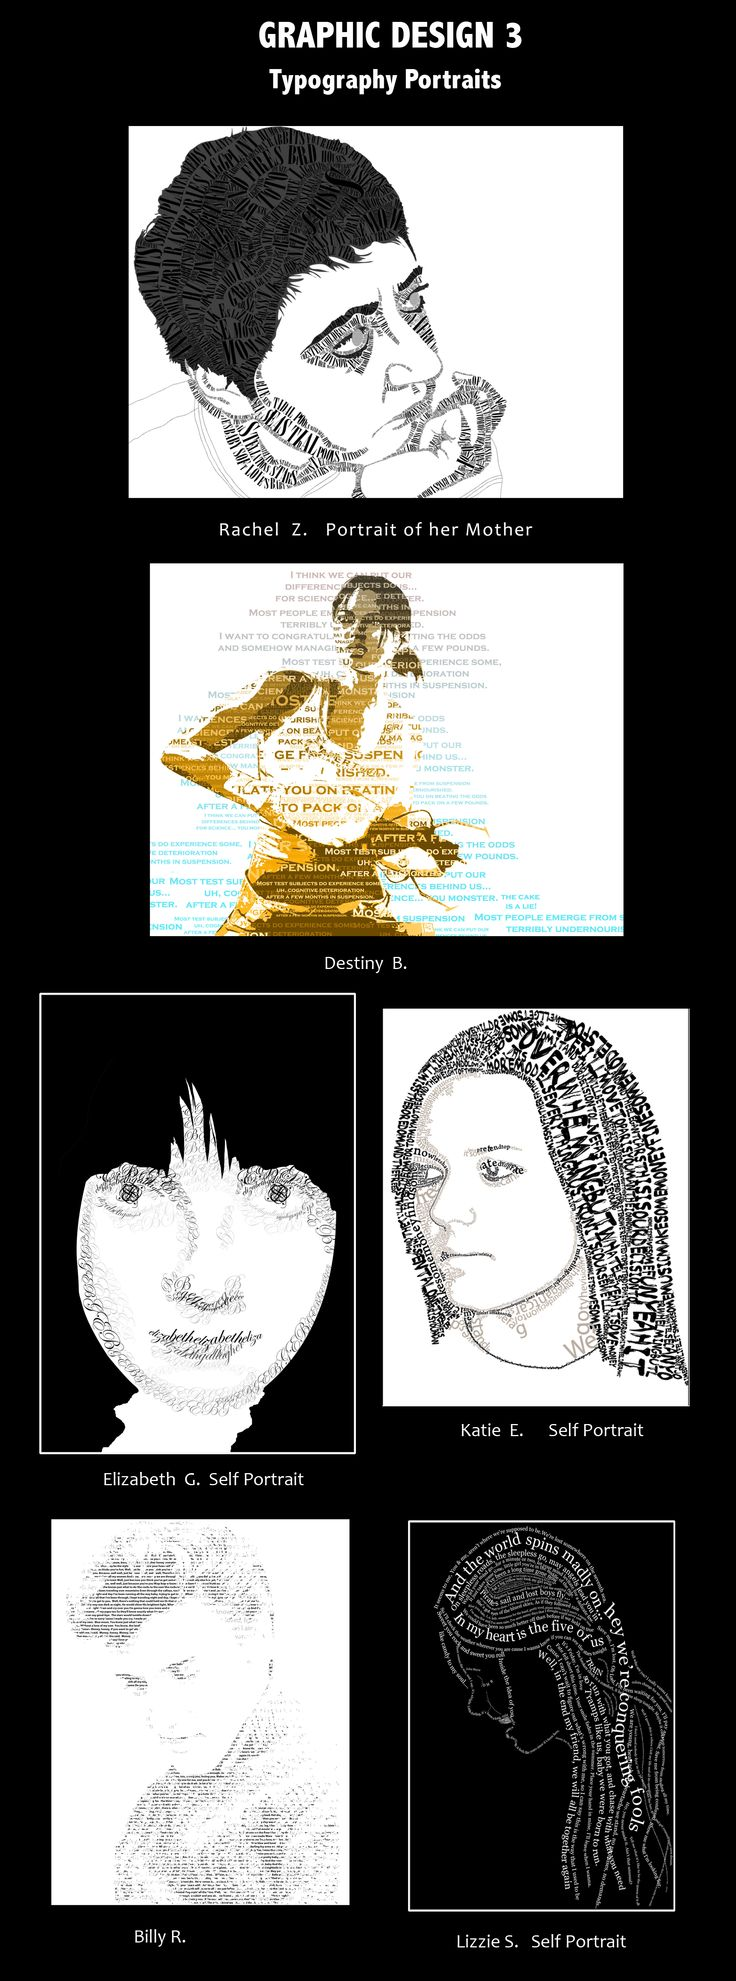 Poster design high school lesson - Typography Portraits Could Be A Good Project For My Students In Graphic Design